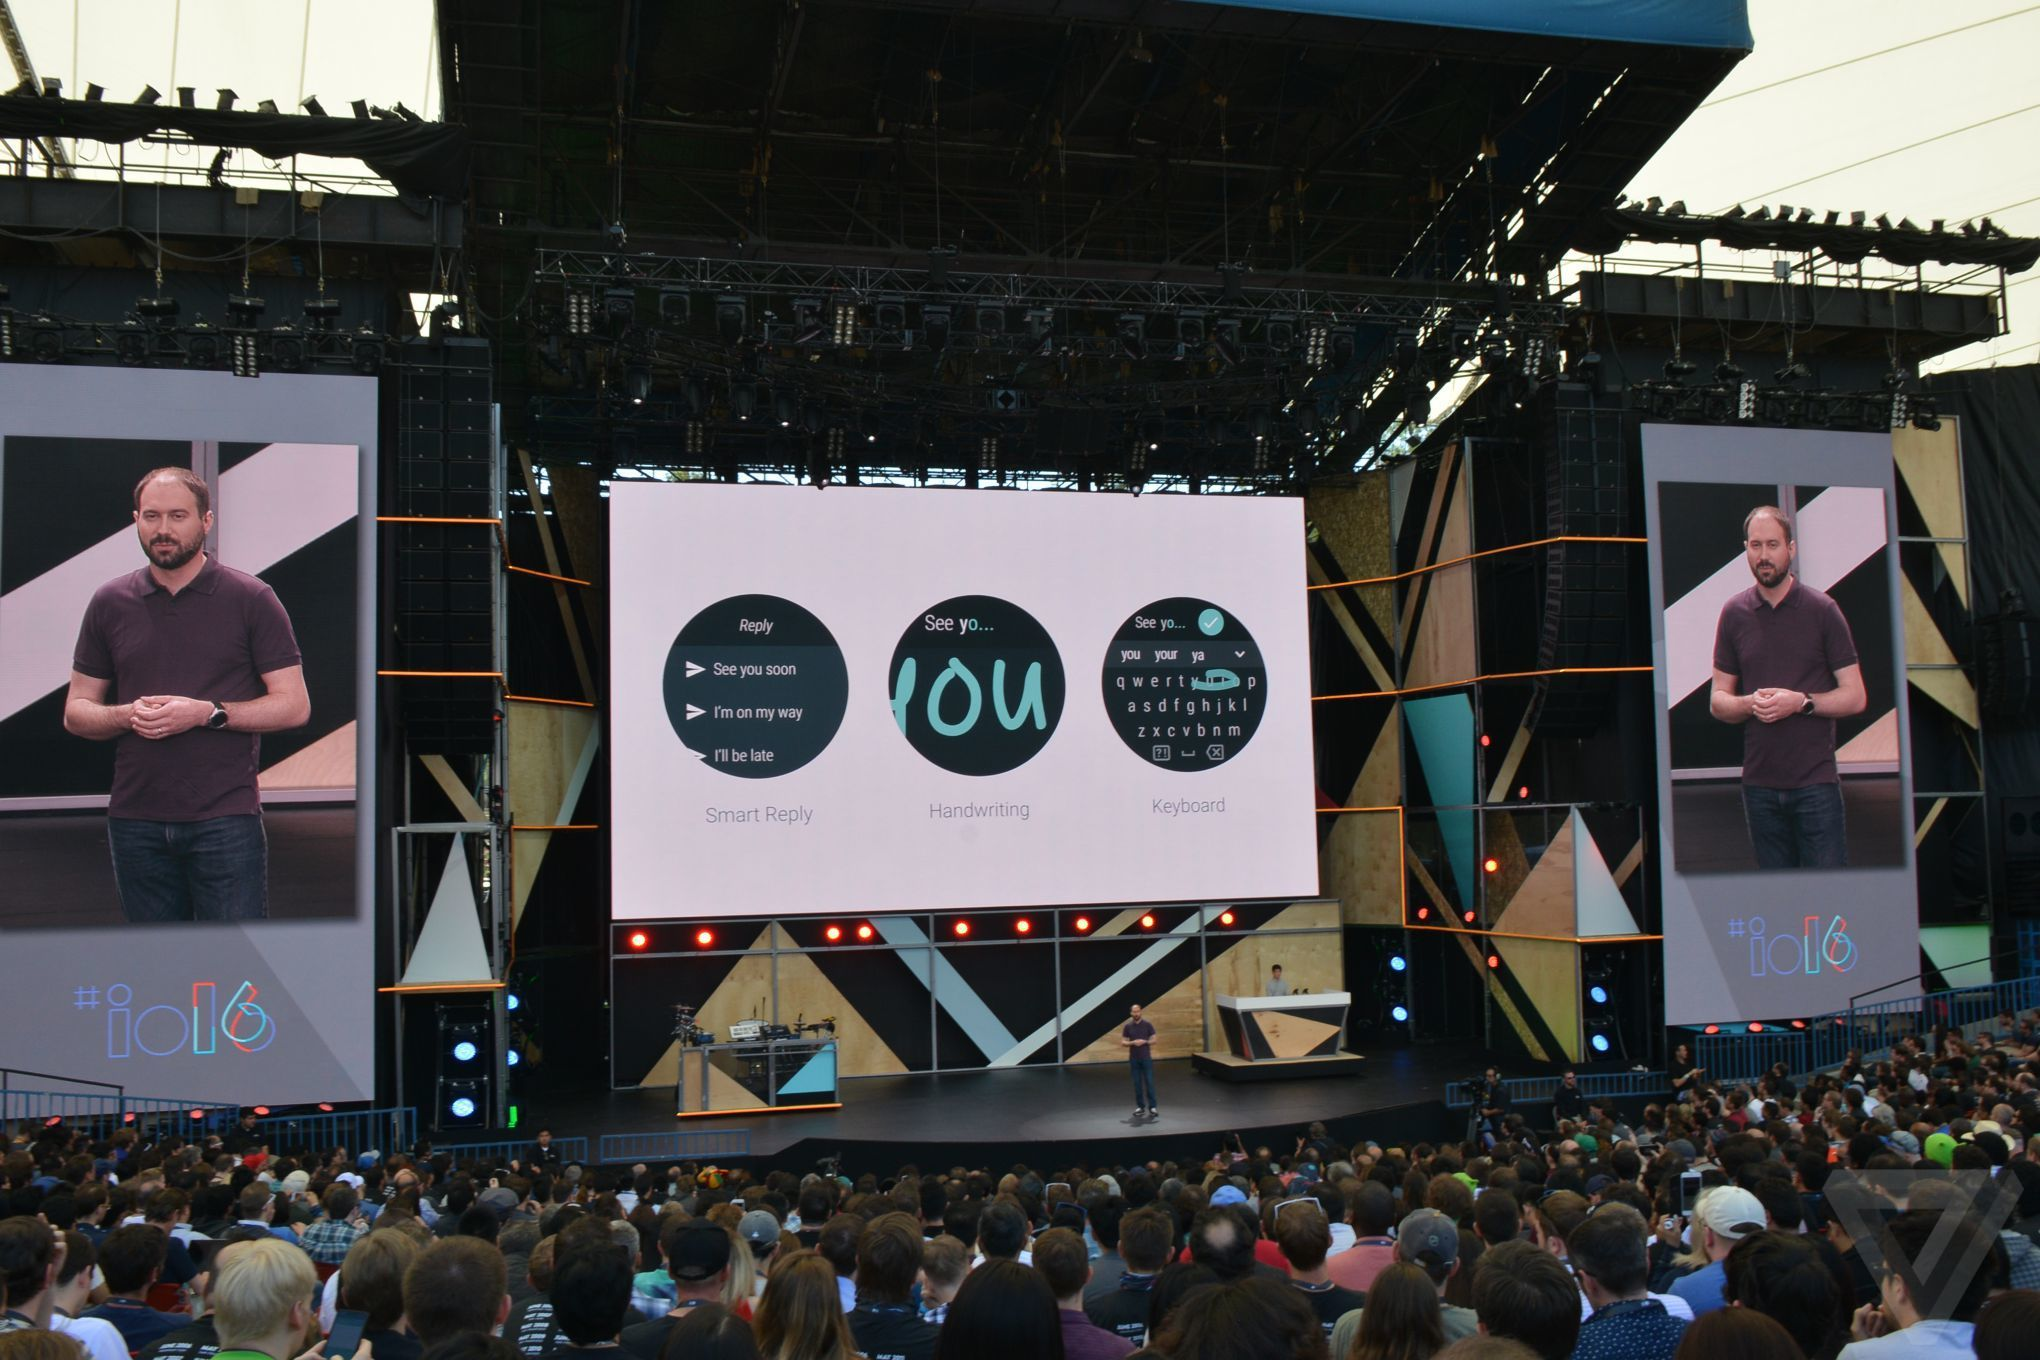 Android Wear 2.0 at Google I/O 2016 announcement photos